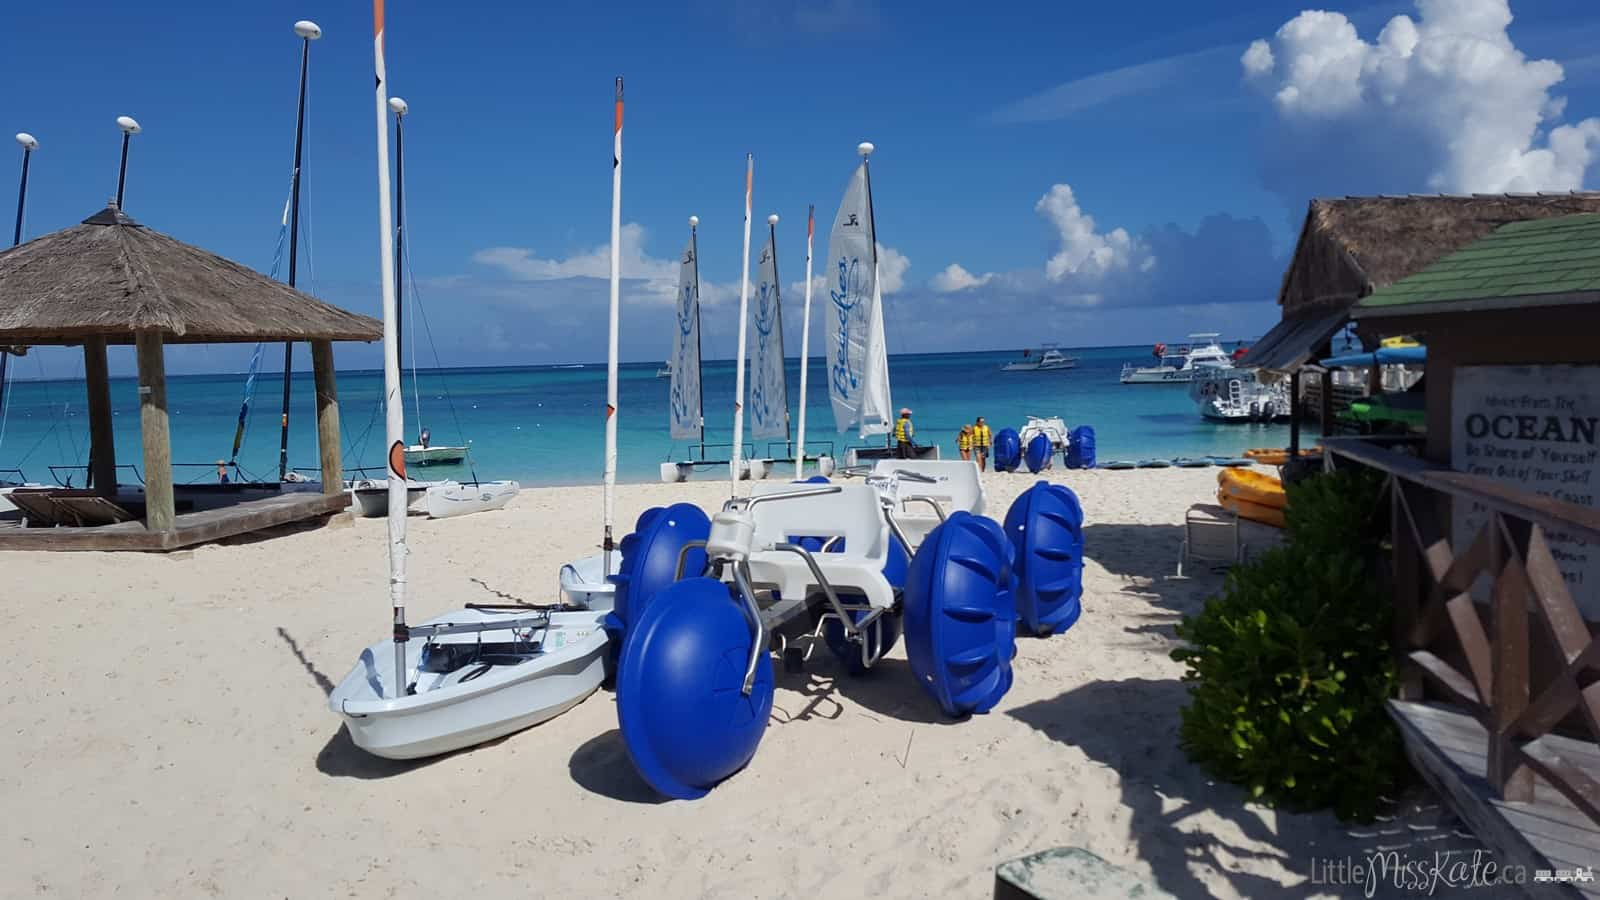 beaches turks and caicos review water sport activities